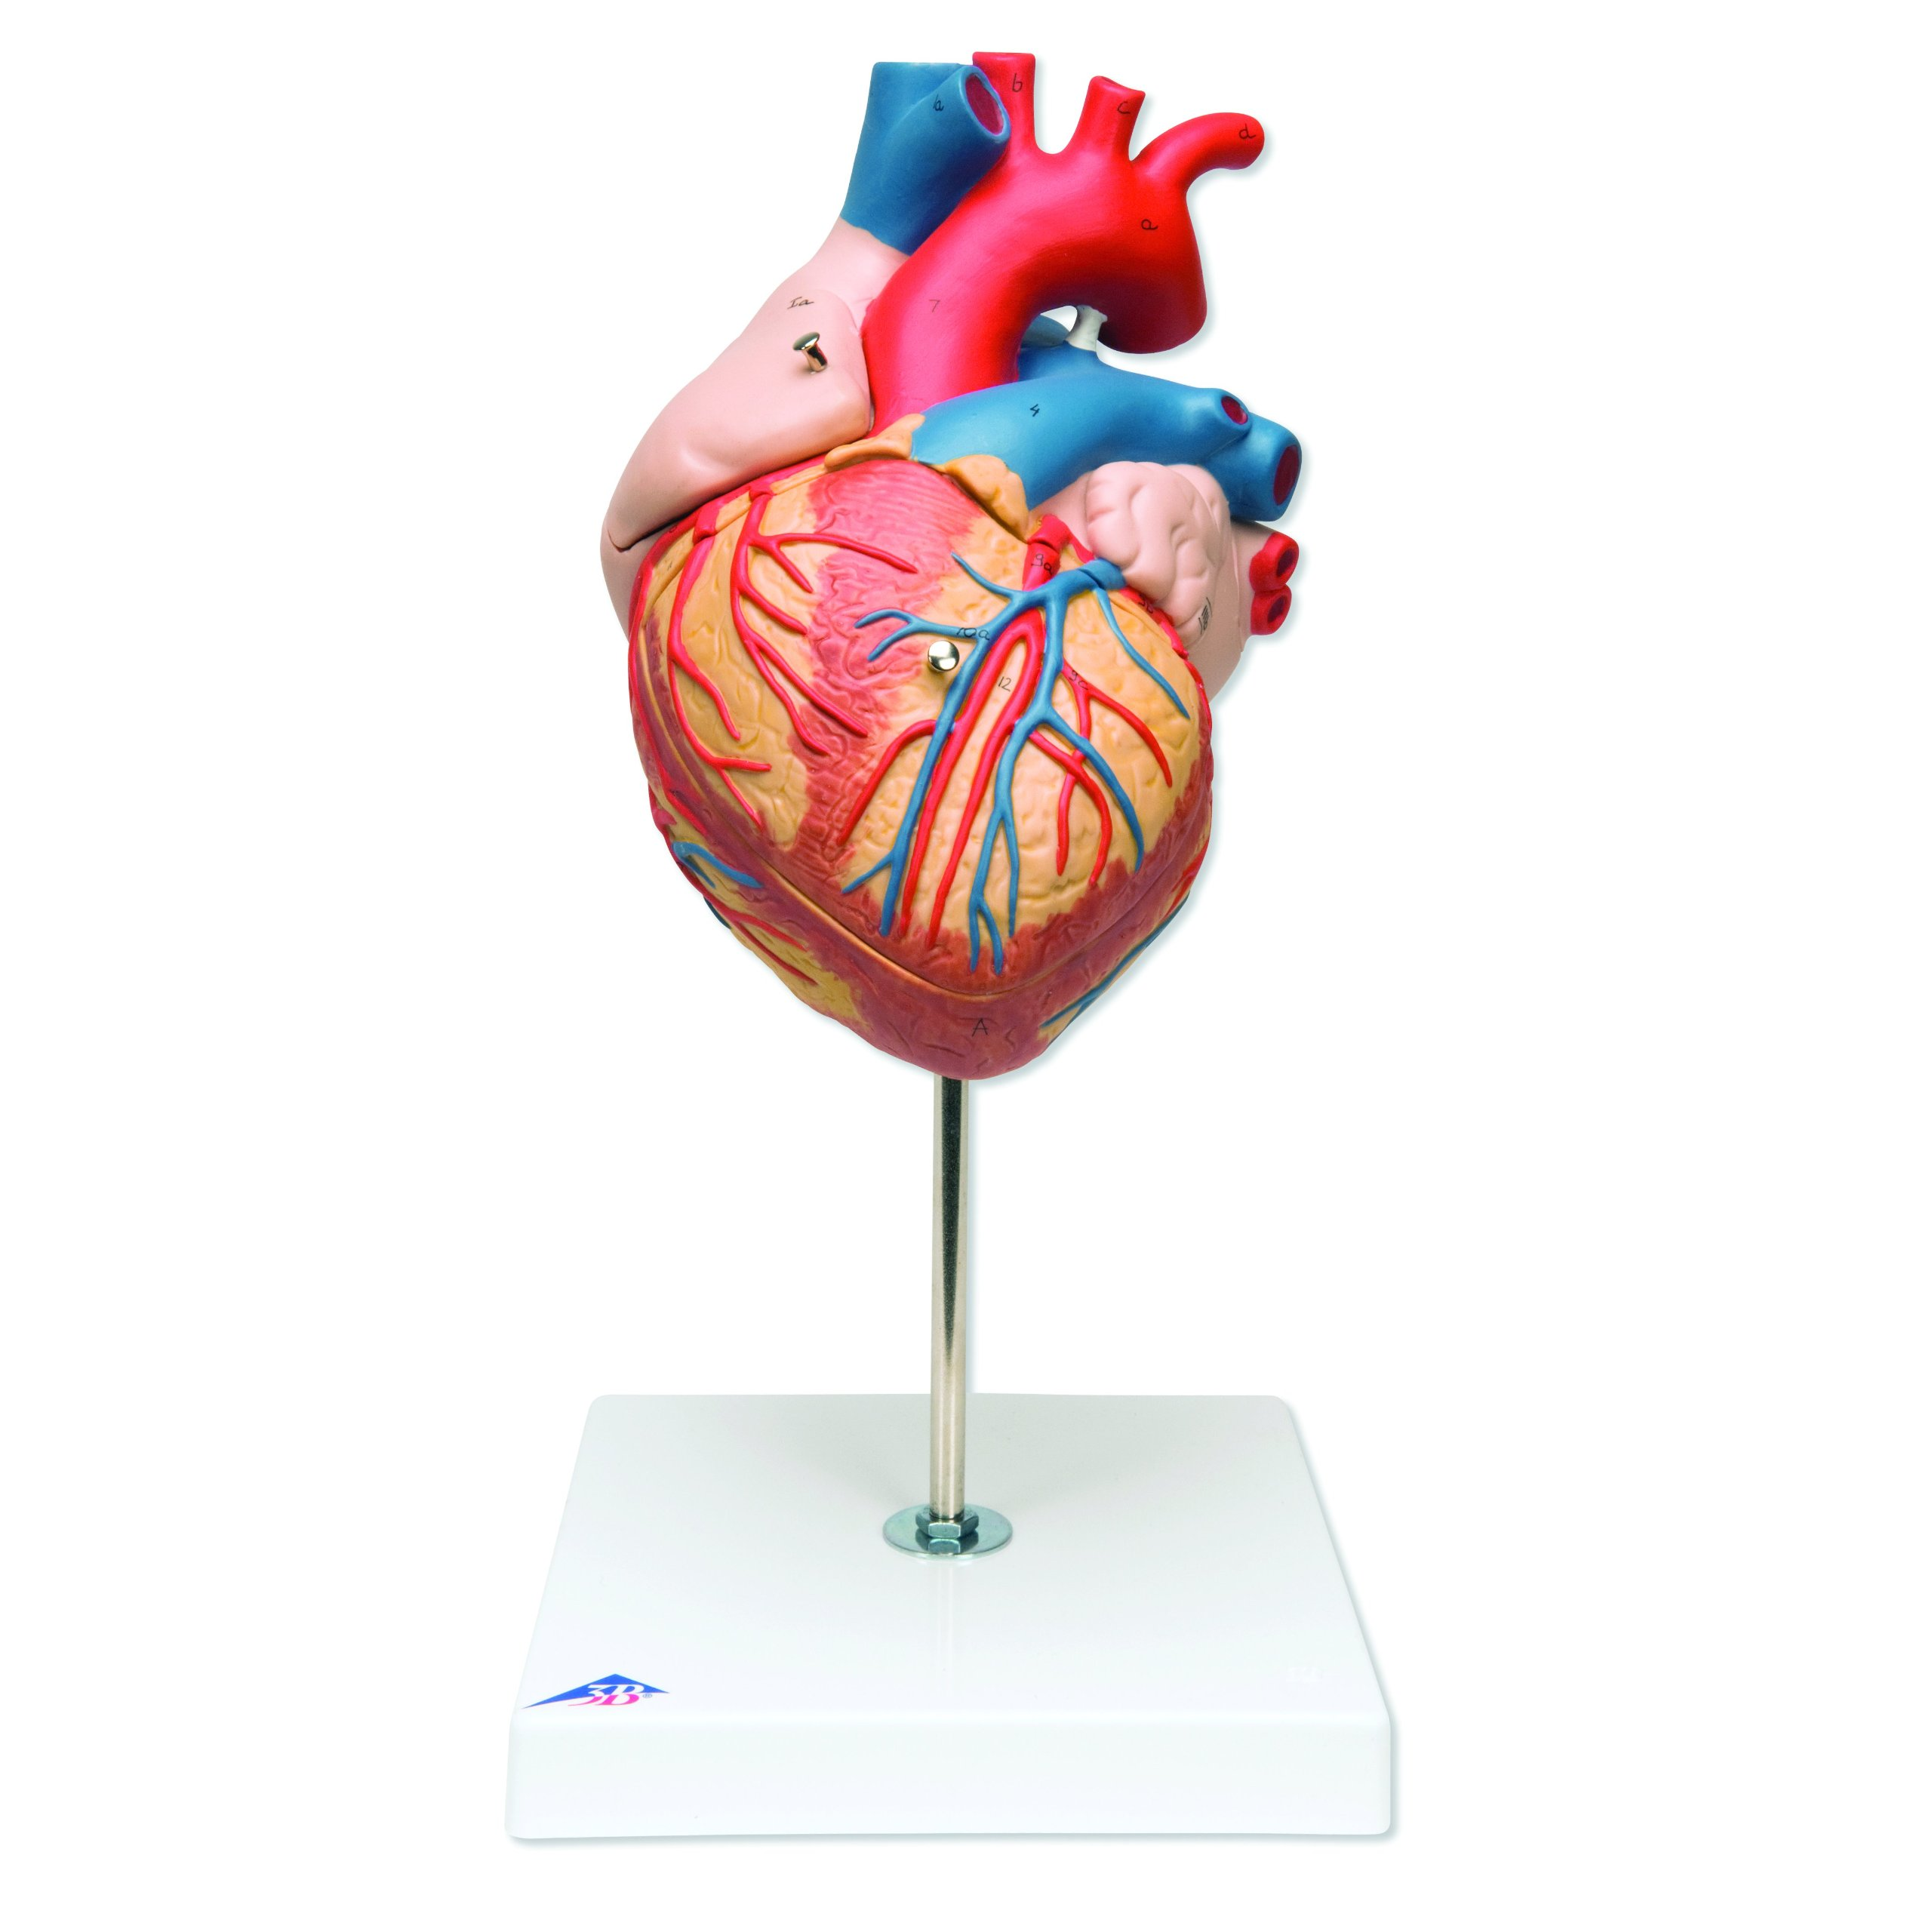 Buy 3B Scientific G12 Human Heart Anatomy Model 2 Times Life-Size in ...